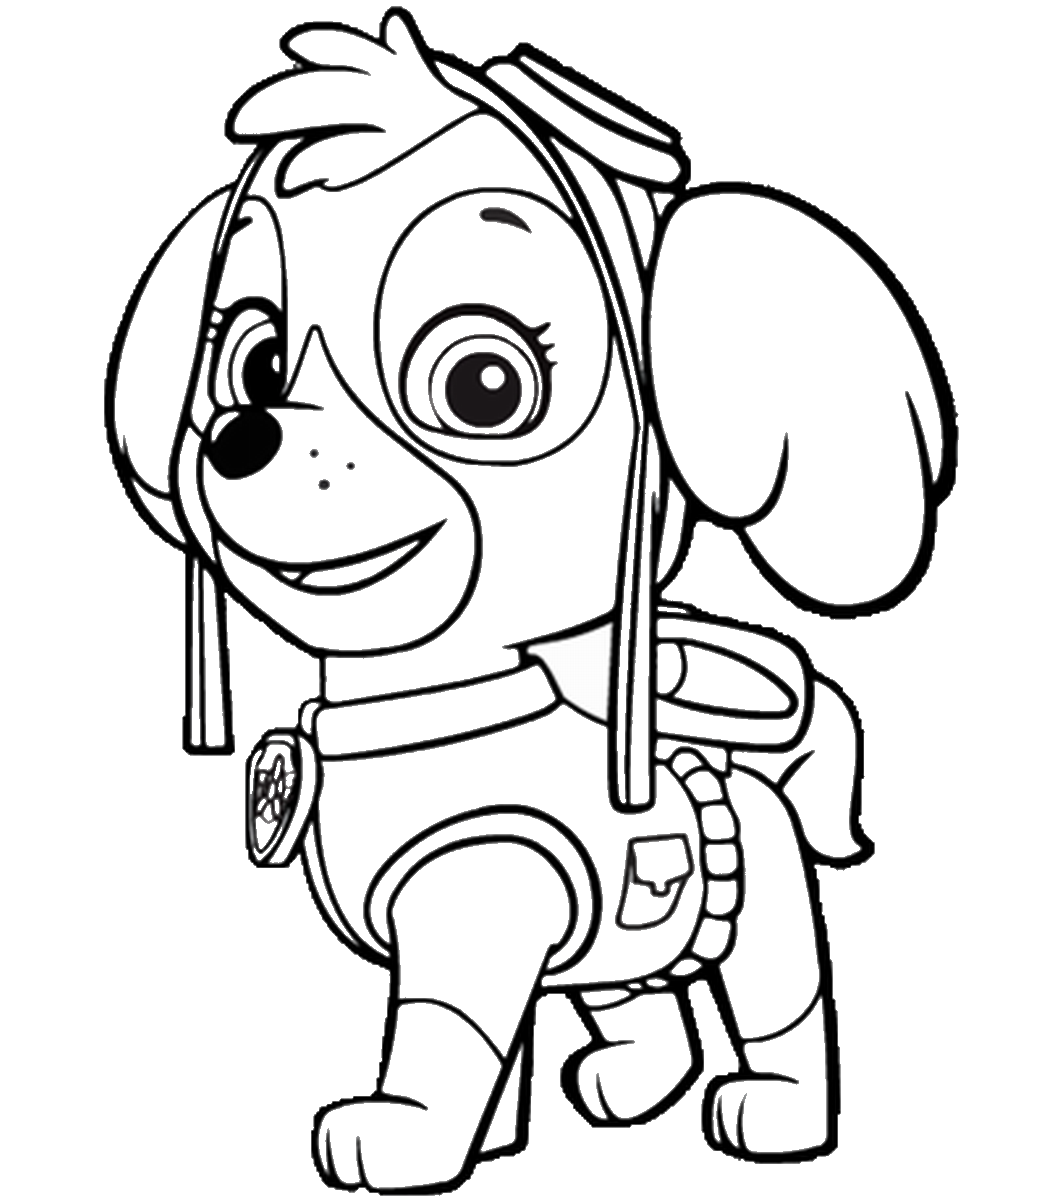 Printable Coloring Pages Of Paw Patrol : Free coloring pages of om paw patrol